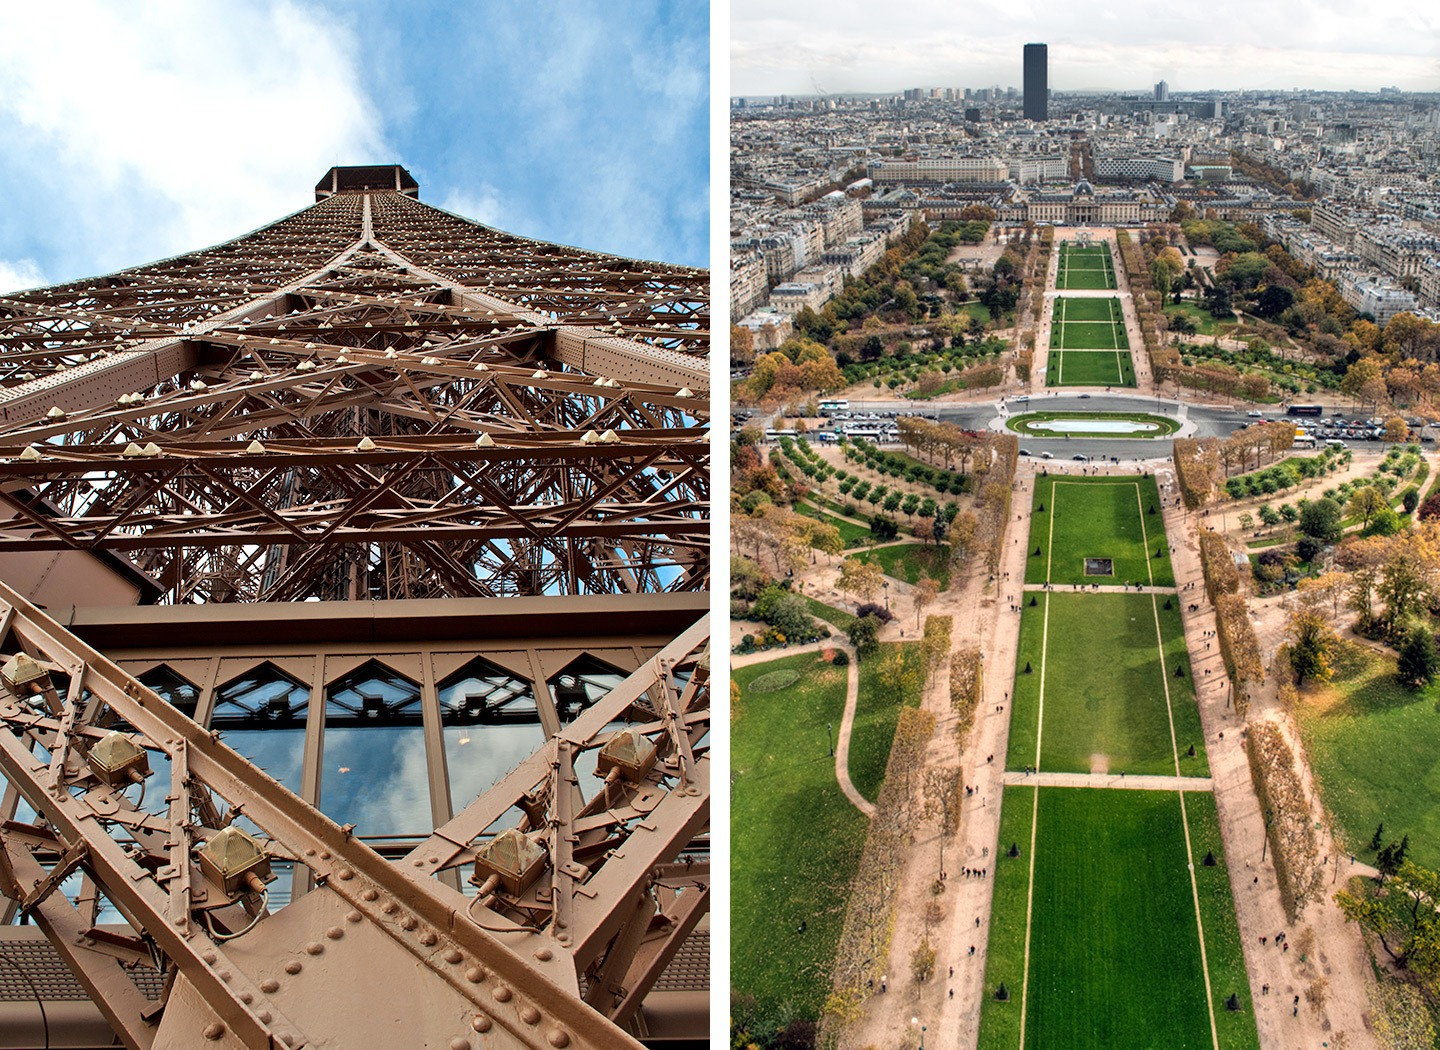 Views from the Eiffel Tower in Paris